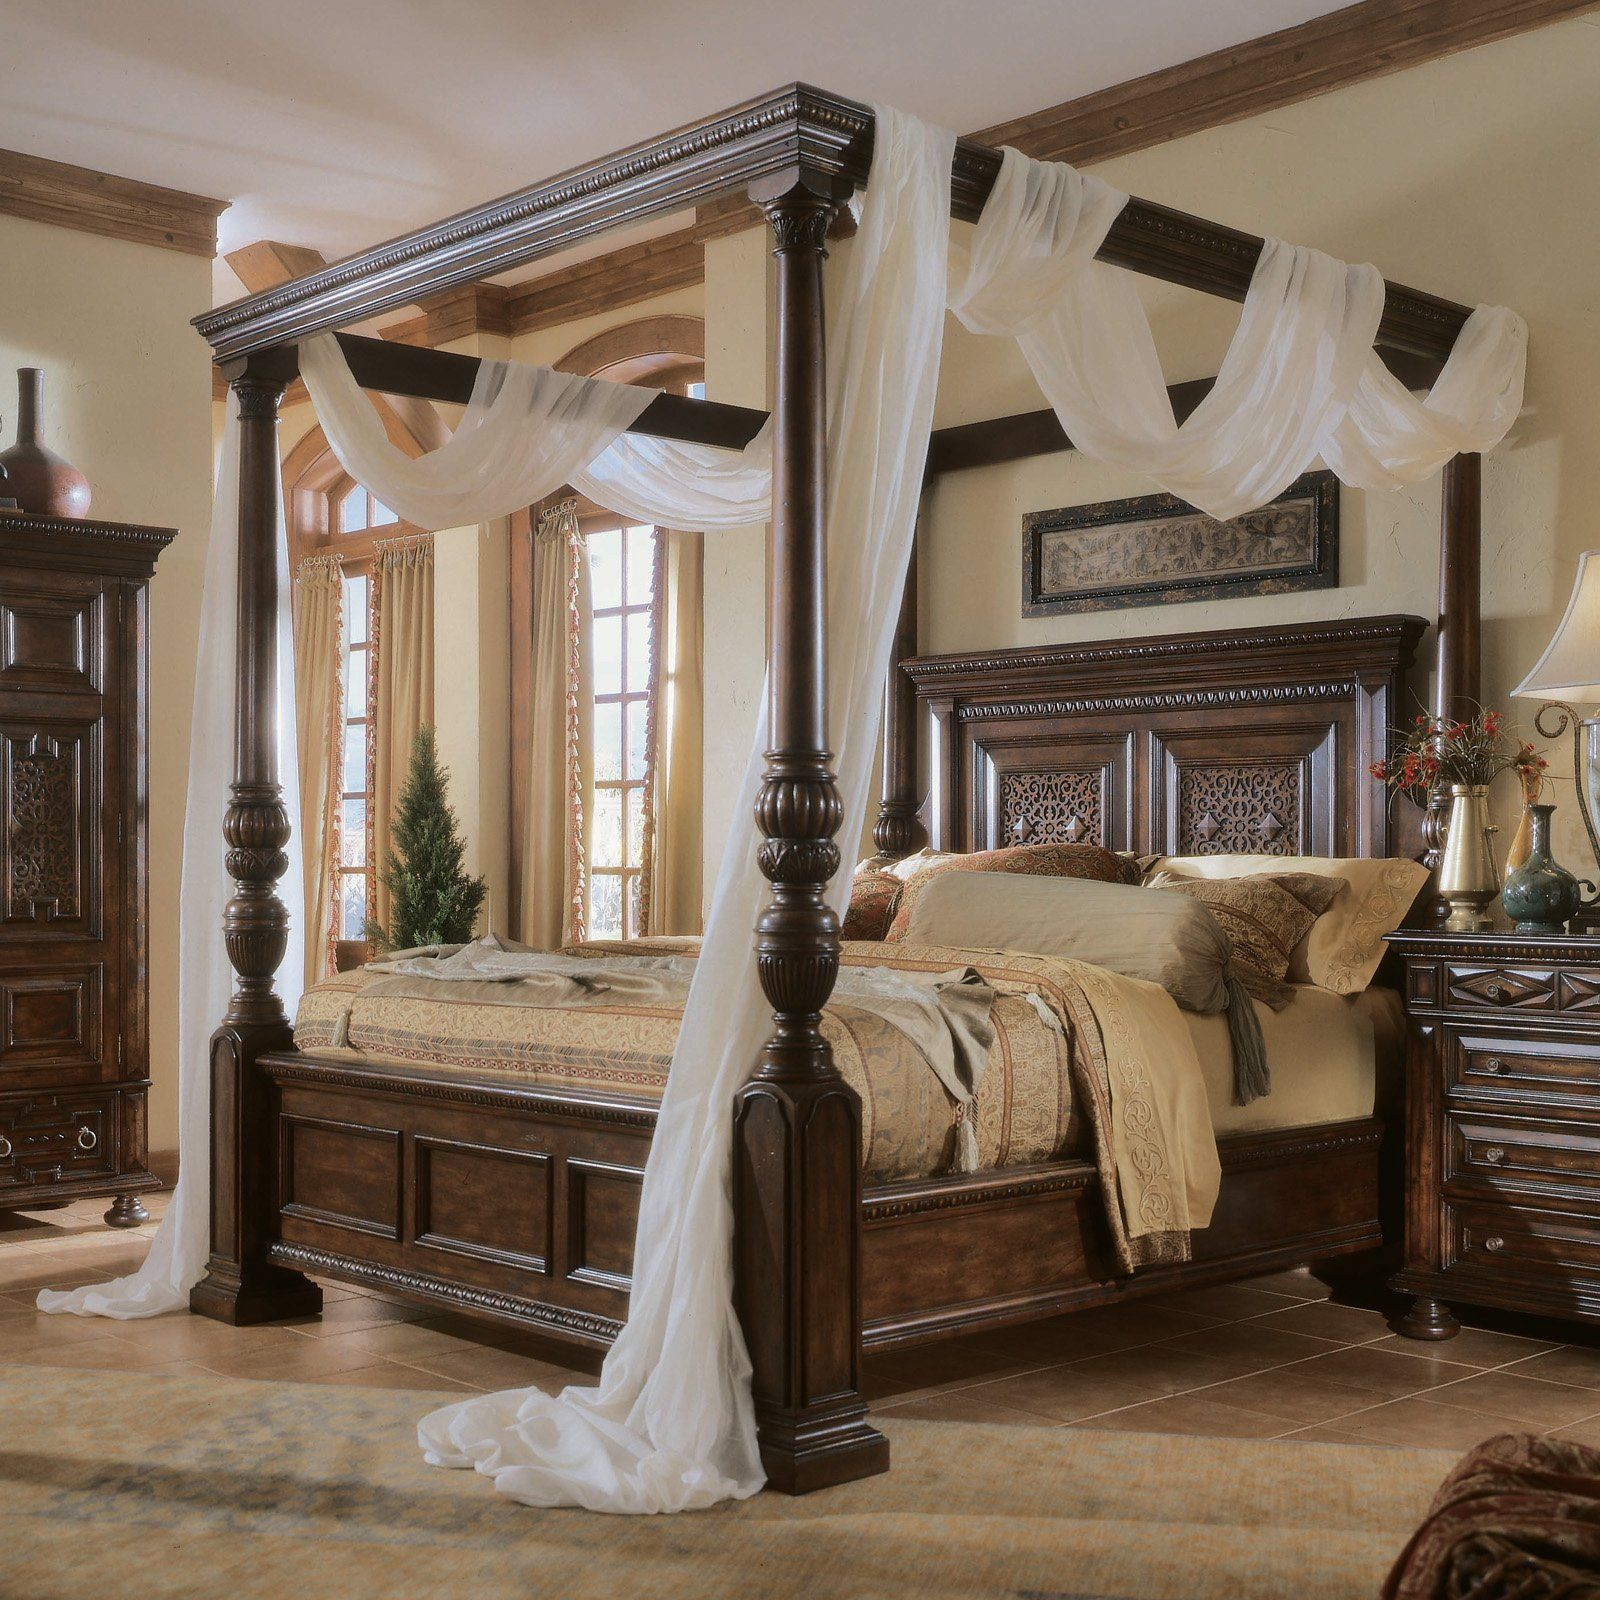 Most Beautiful Beds 6